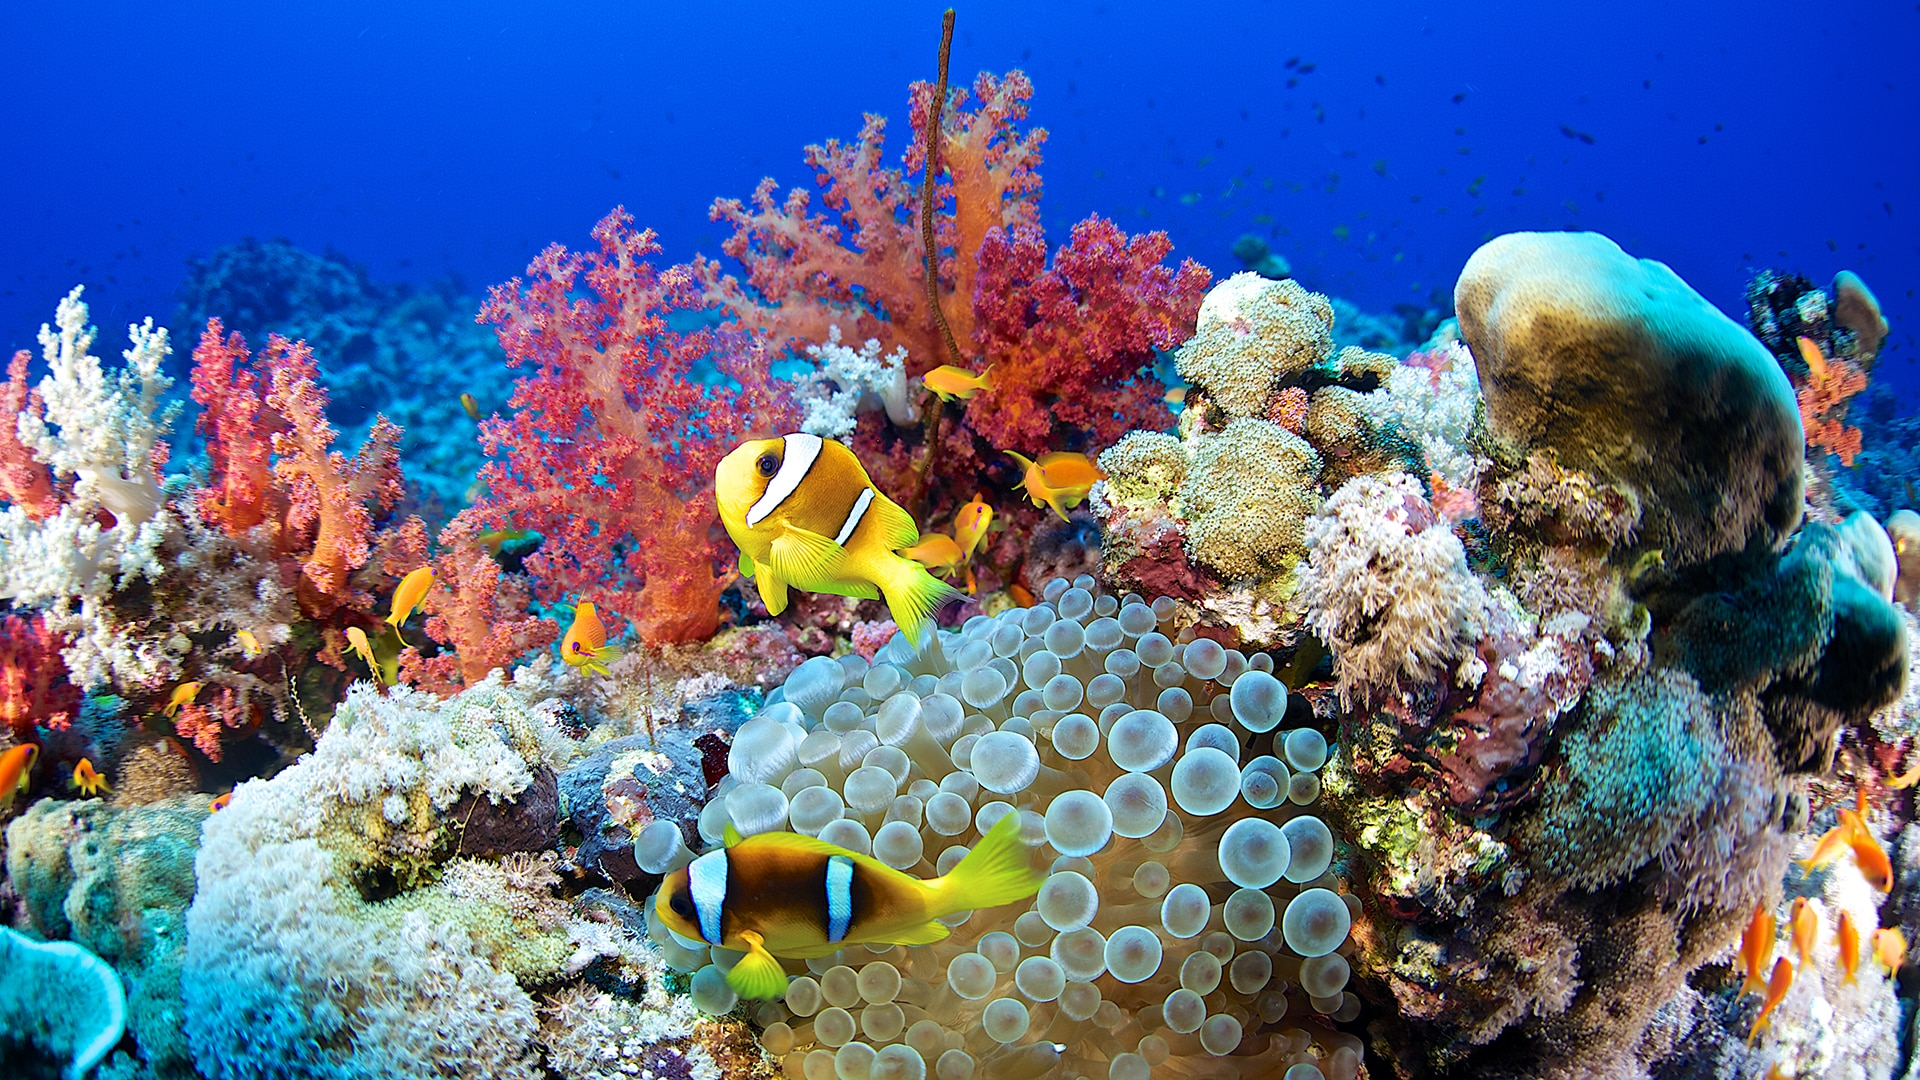 Clownfish and coral reef